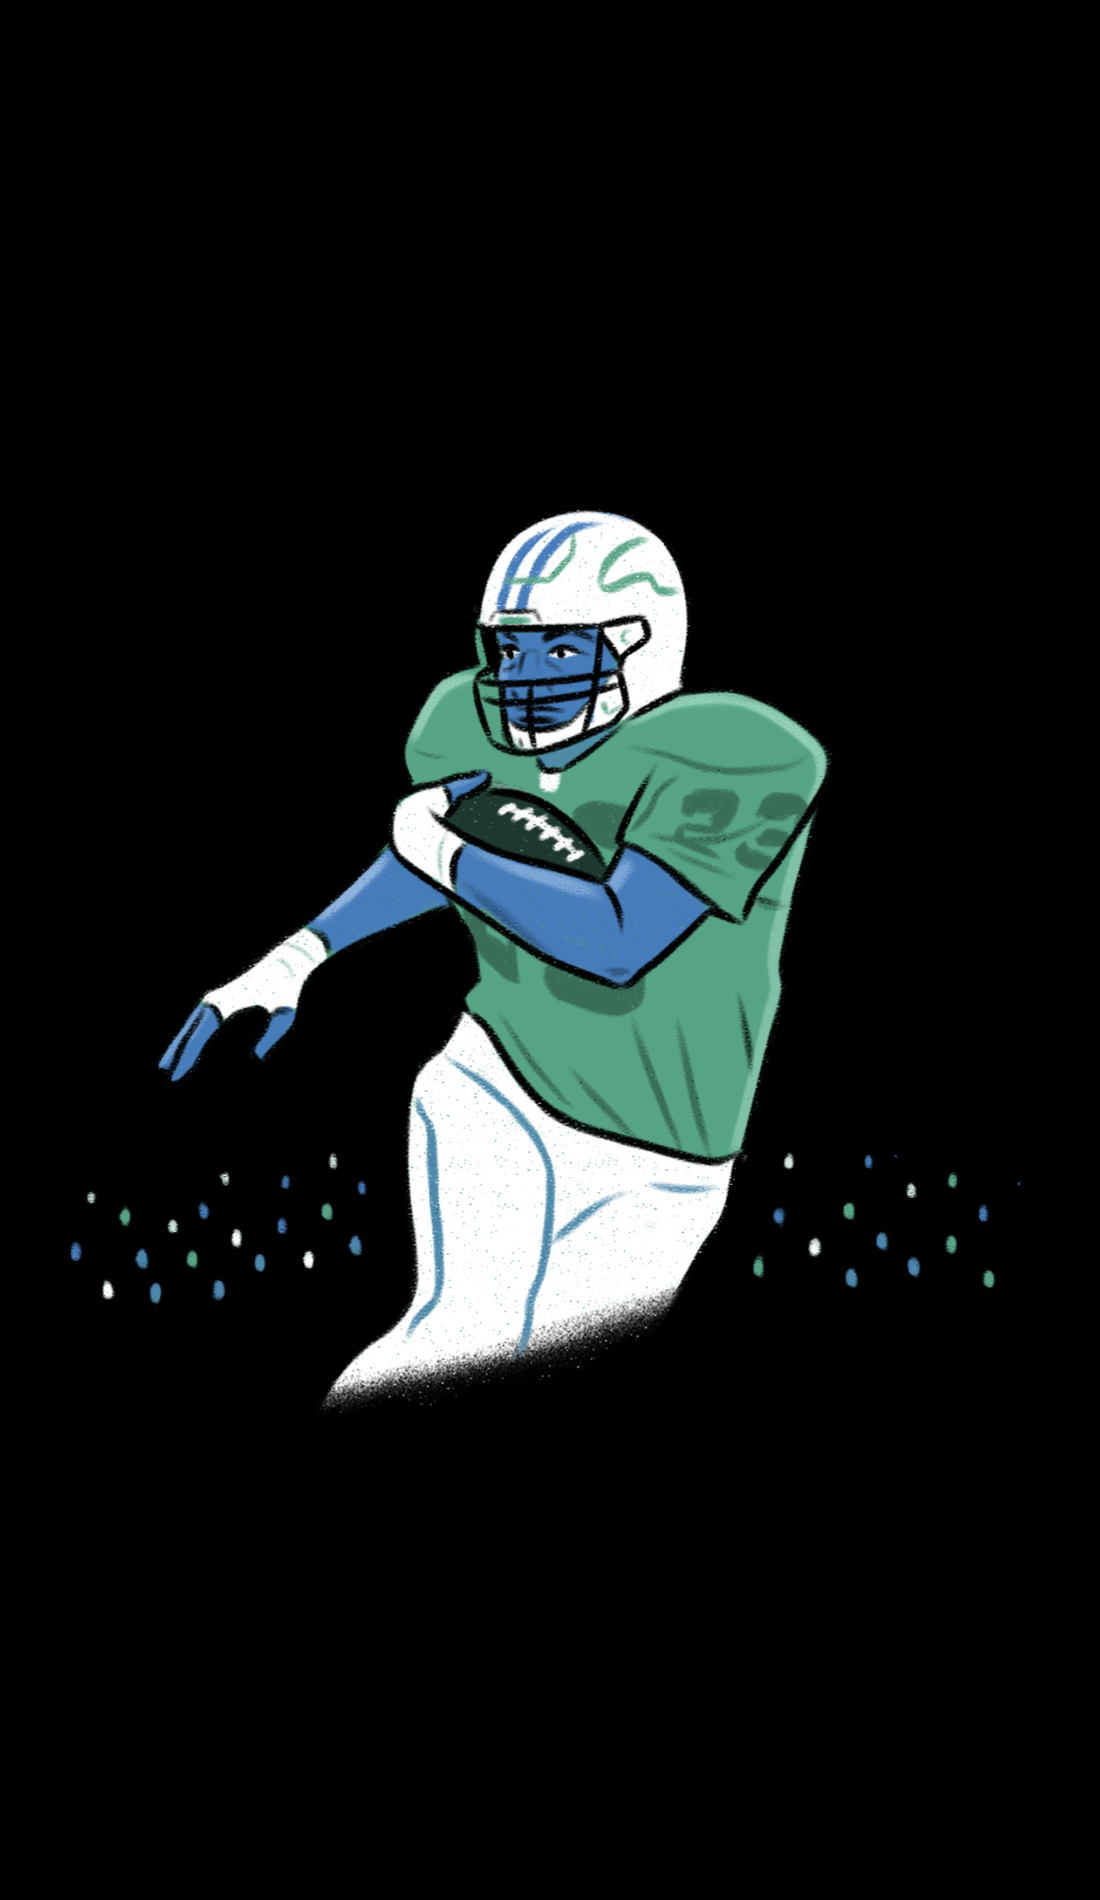 A Florida A&M Rattlers Football live event